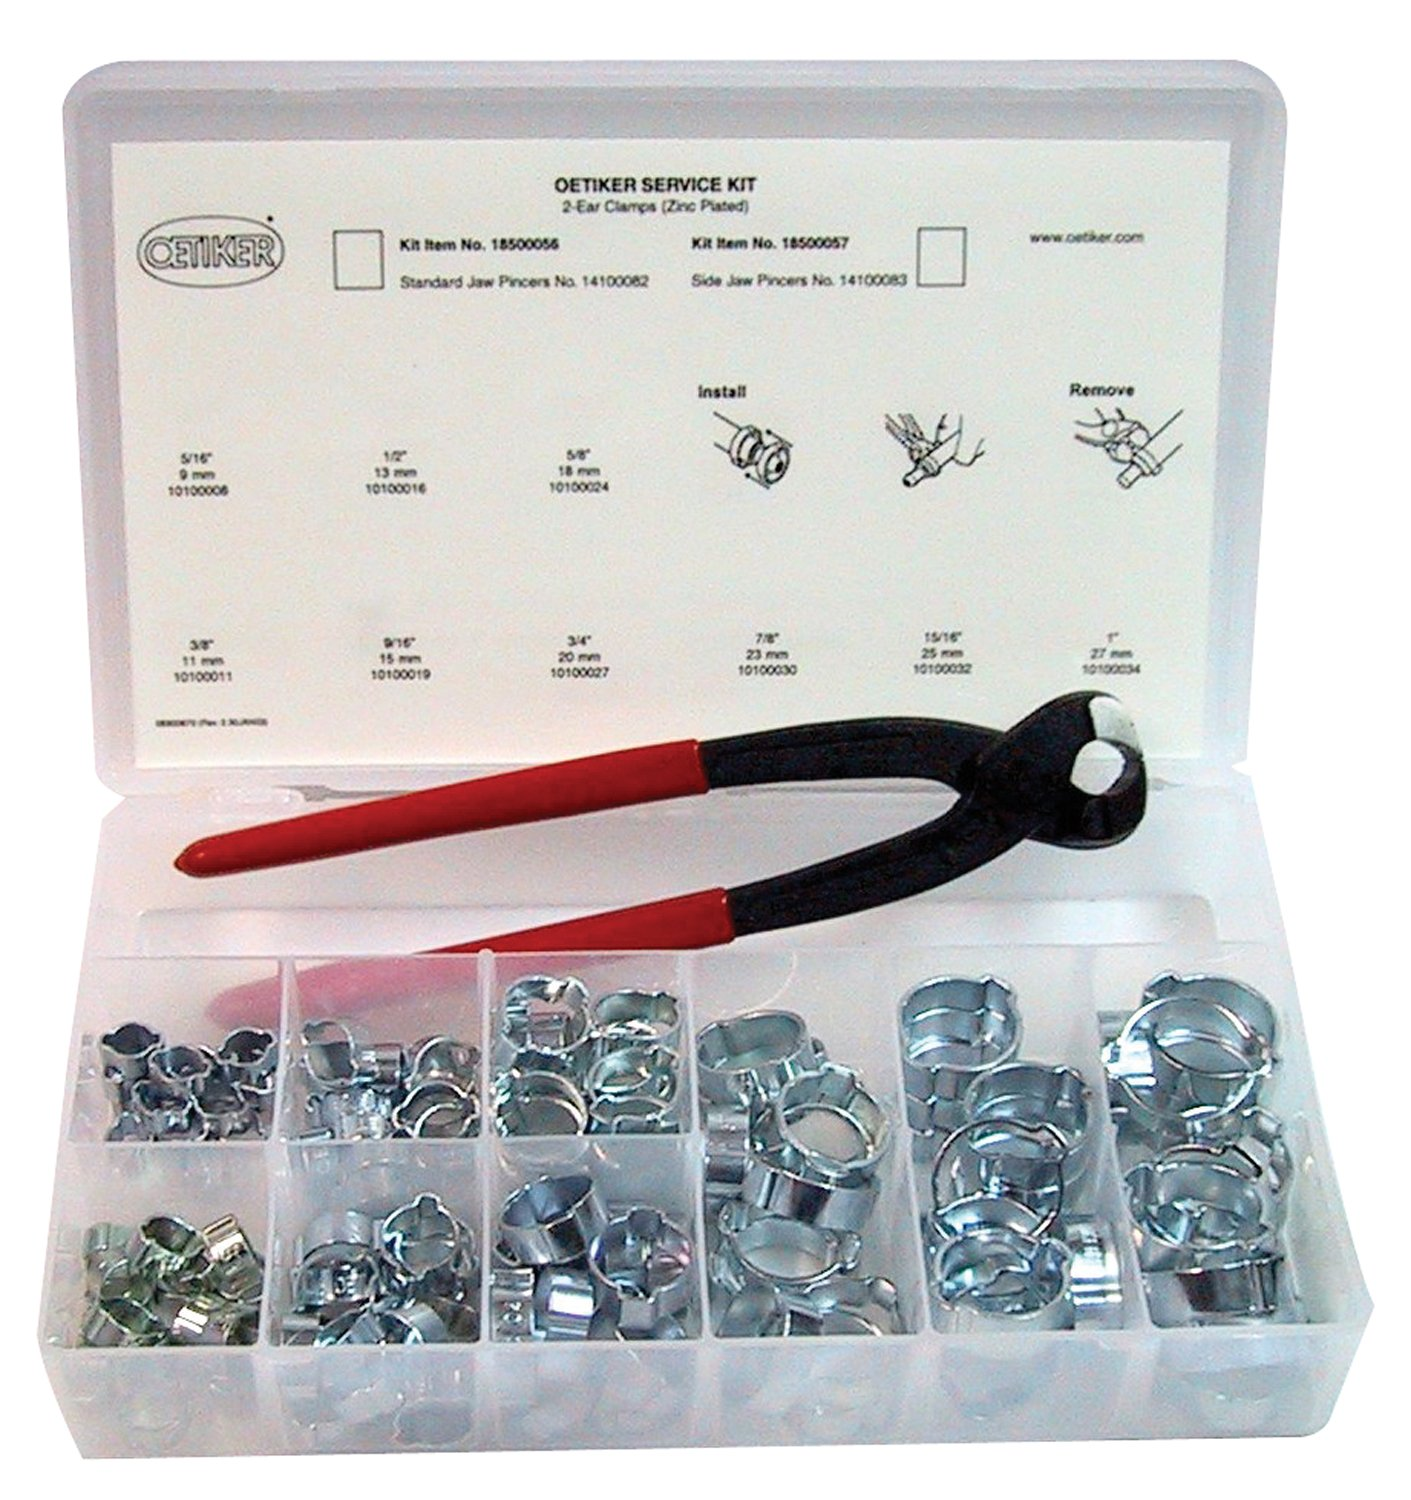 Oetiker 18500056 Service Kit (2-Ear Clamps, zinc plated with standard jaw single action pincers) by Oetiker